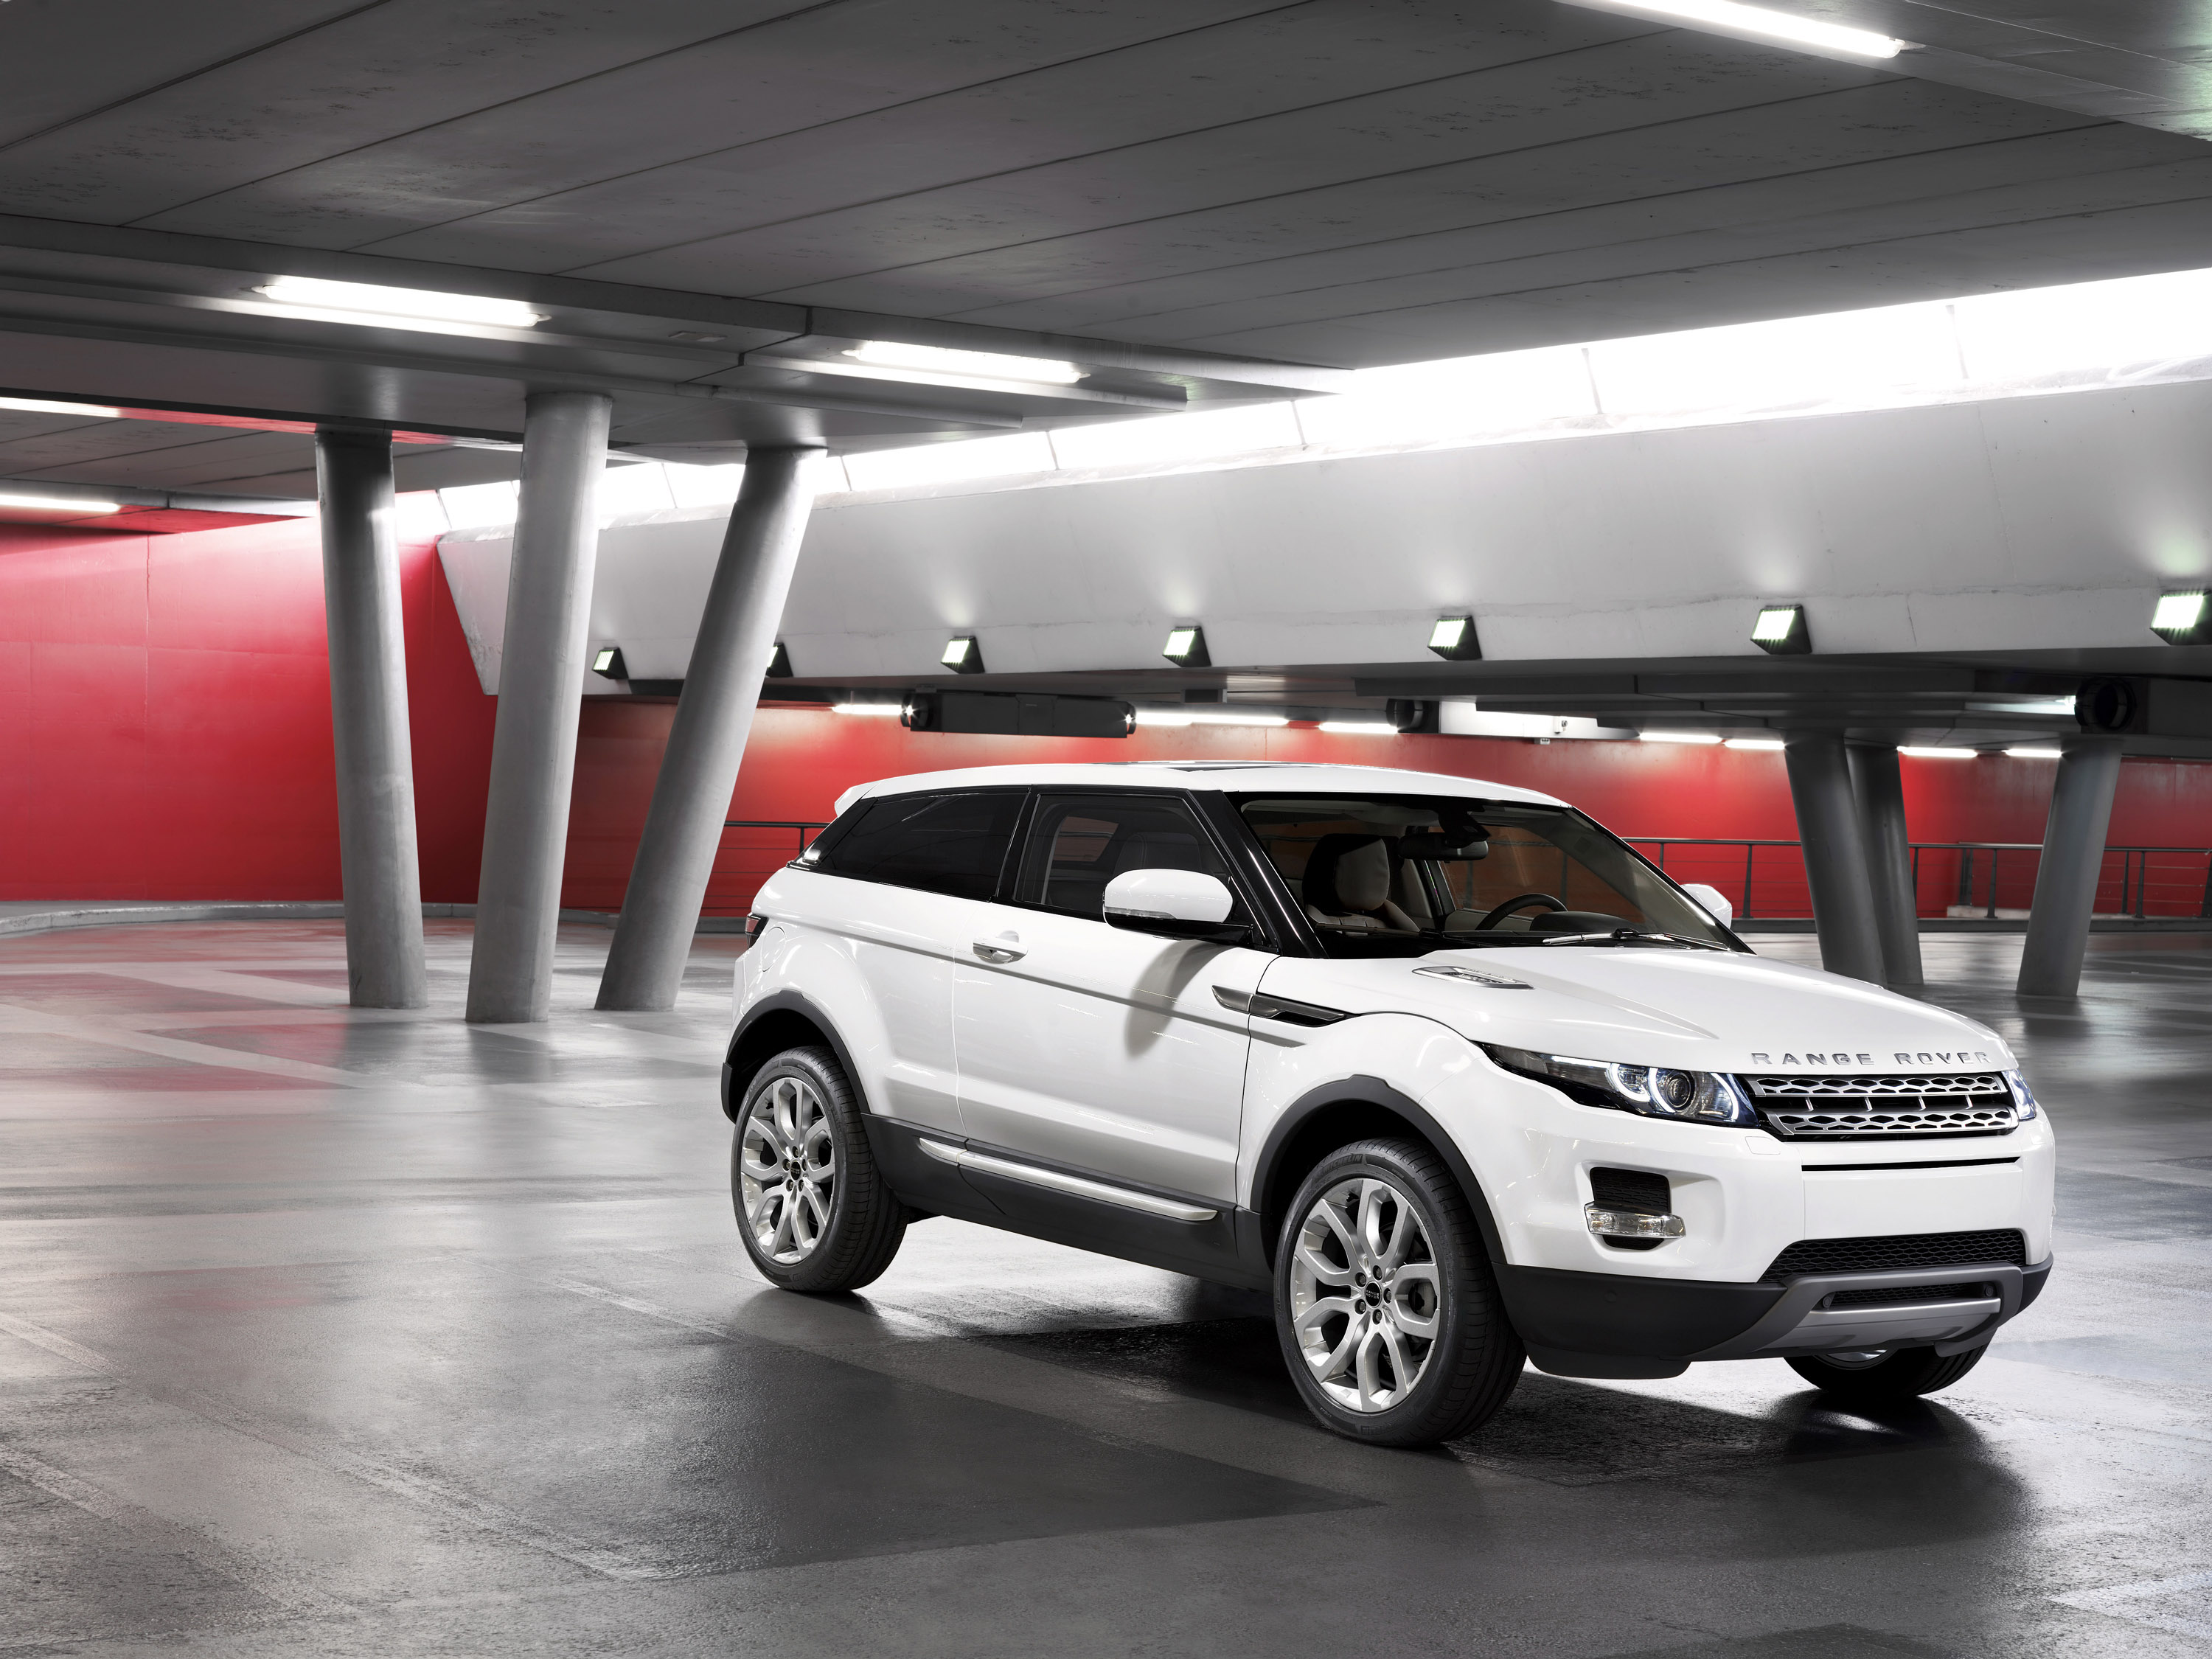 2010 mondial de l auto de paris range rover evoque dark cars wallpapers. Black Bedroom Furniture Sets. Home Design Ideas